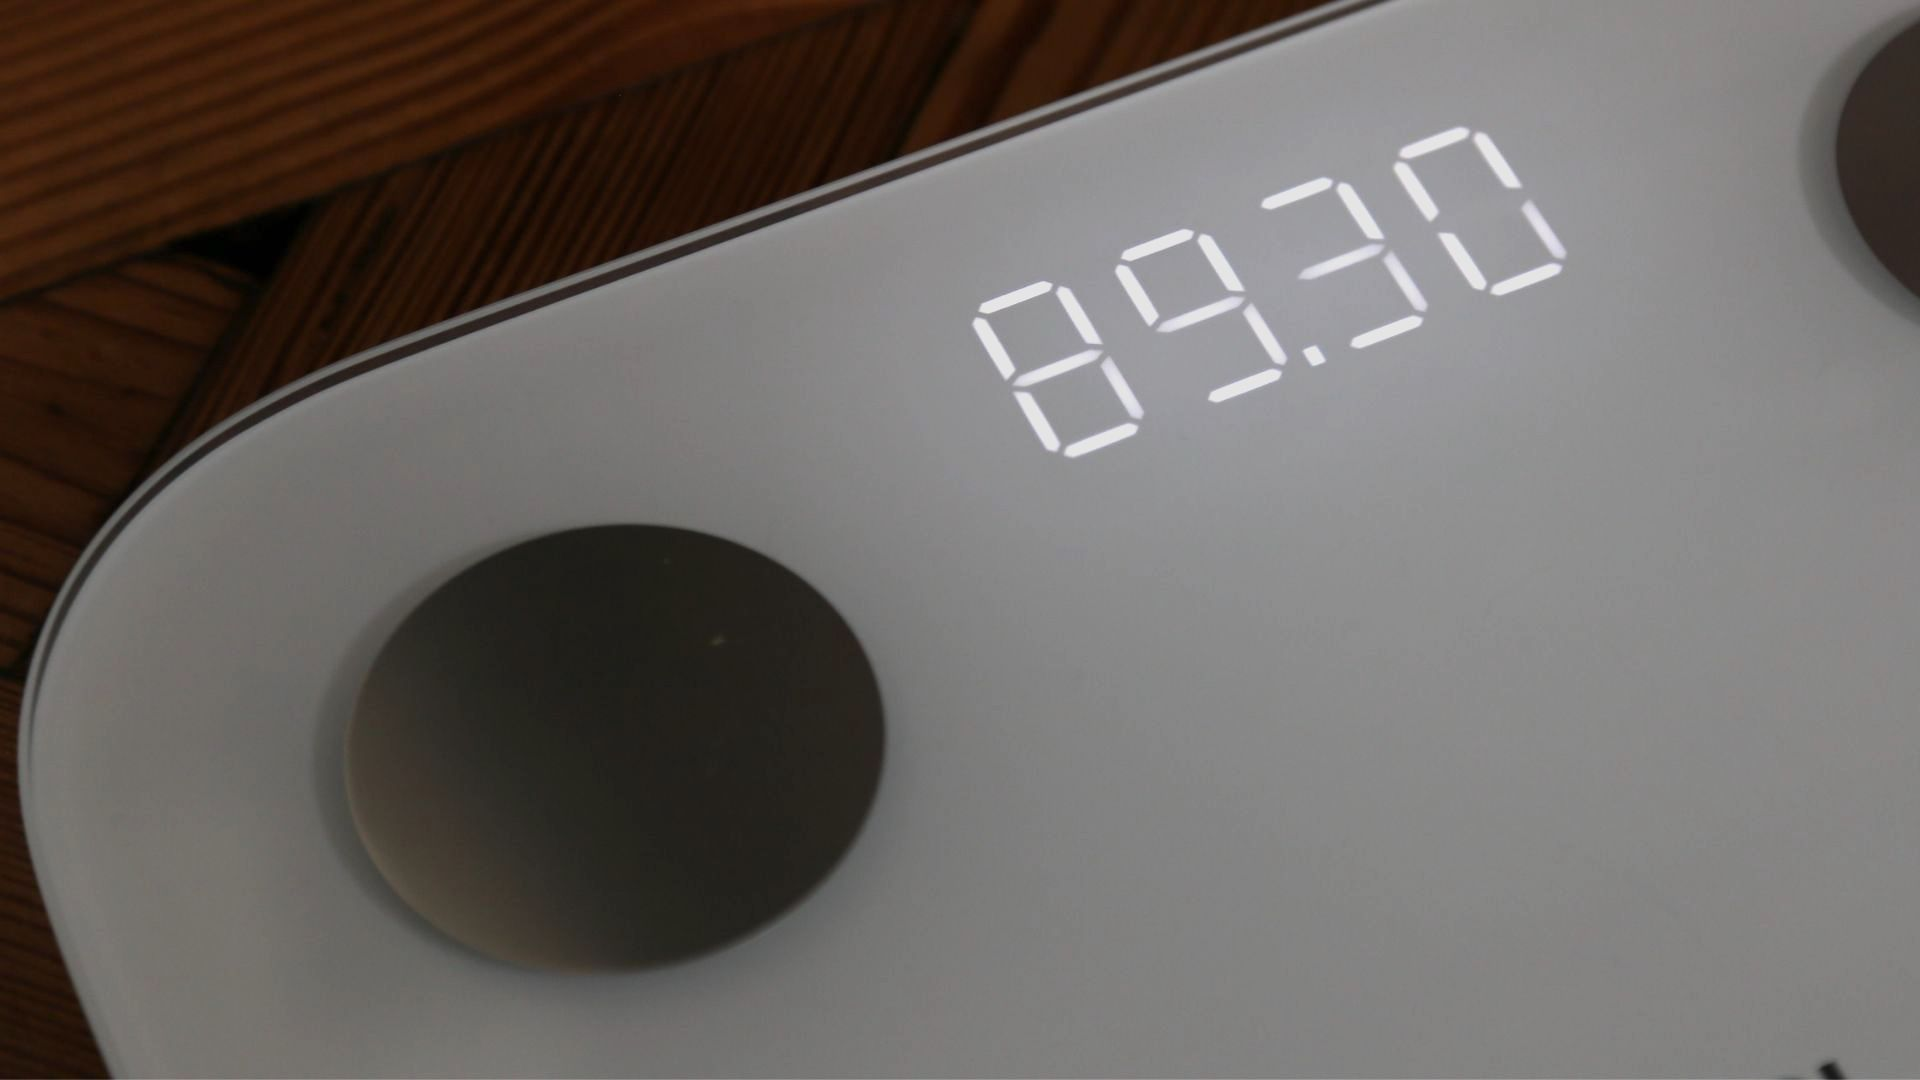 Weight displayed on the Xiaomi Mi Body Composition Scale 2